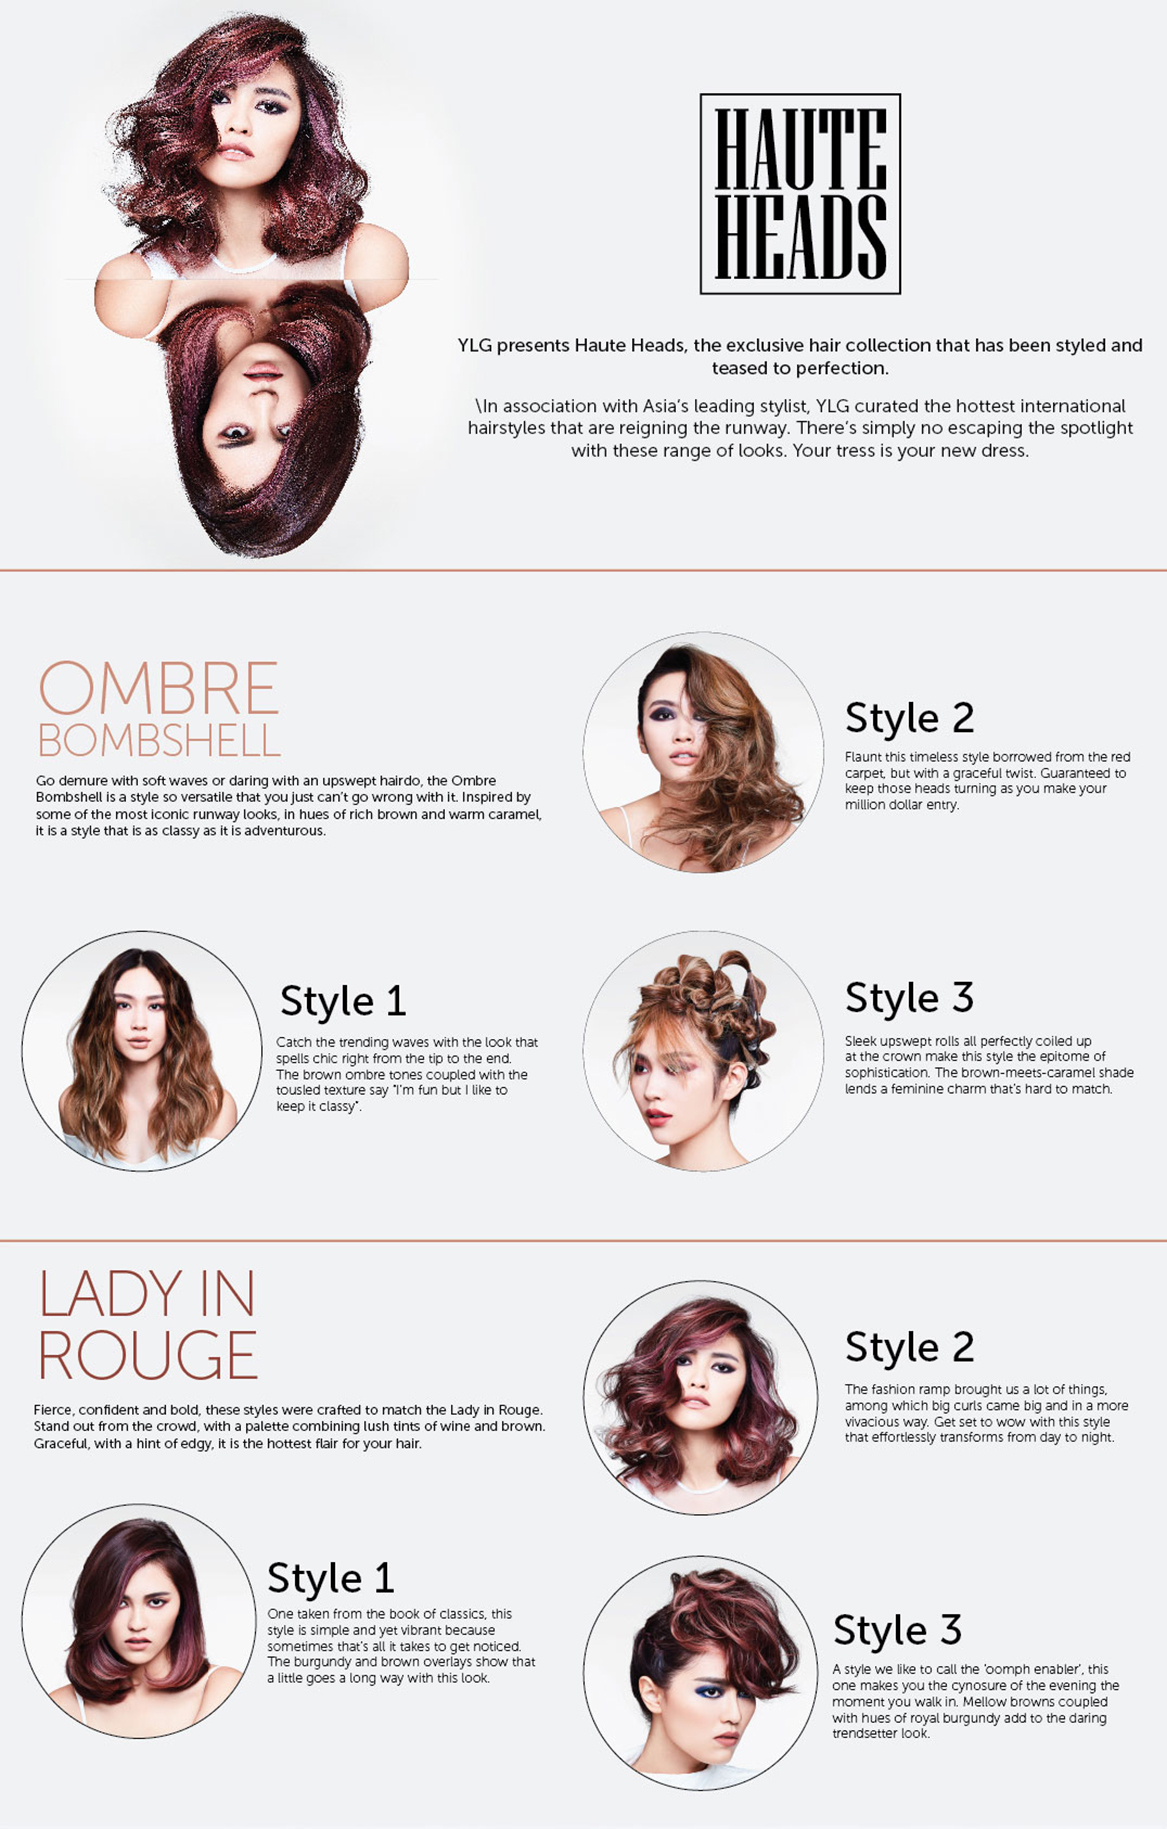 international women hair styles & textures, salon haircut ideas -ylg